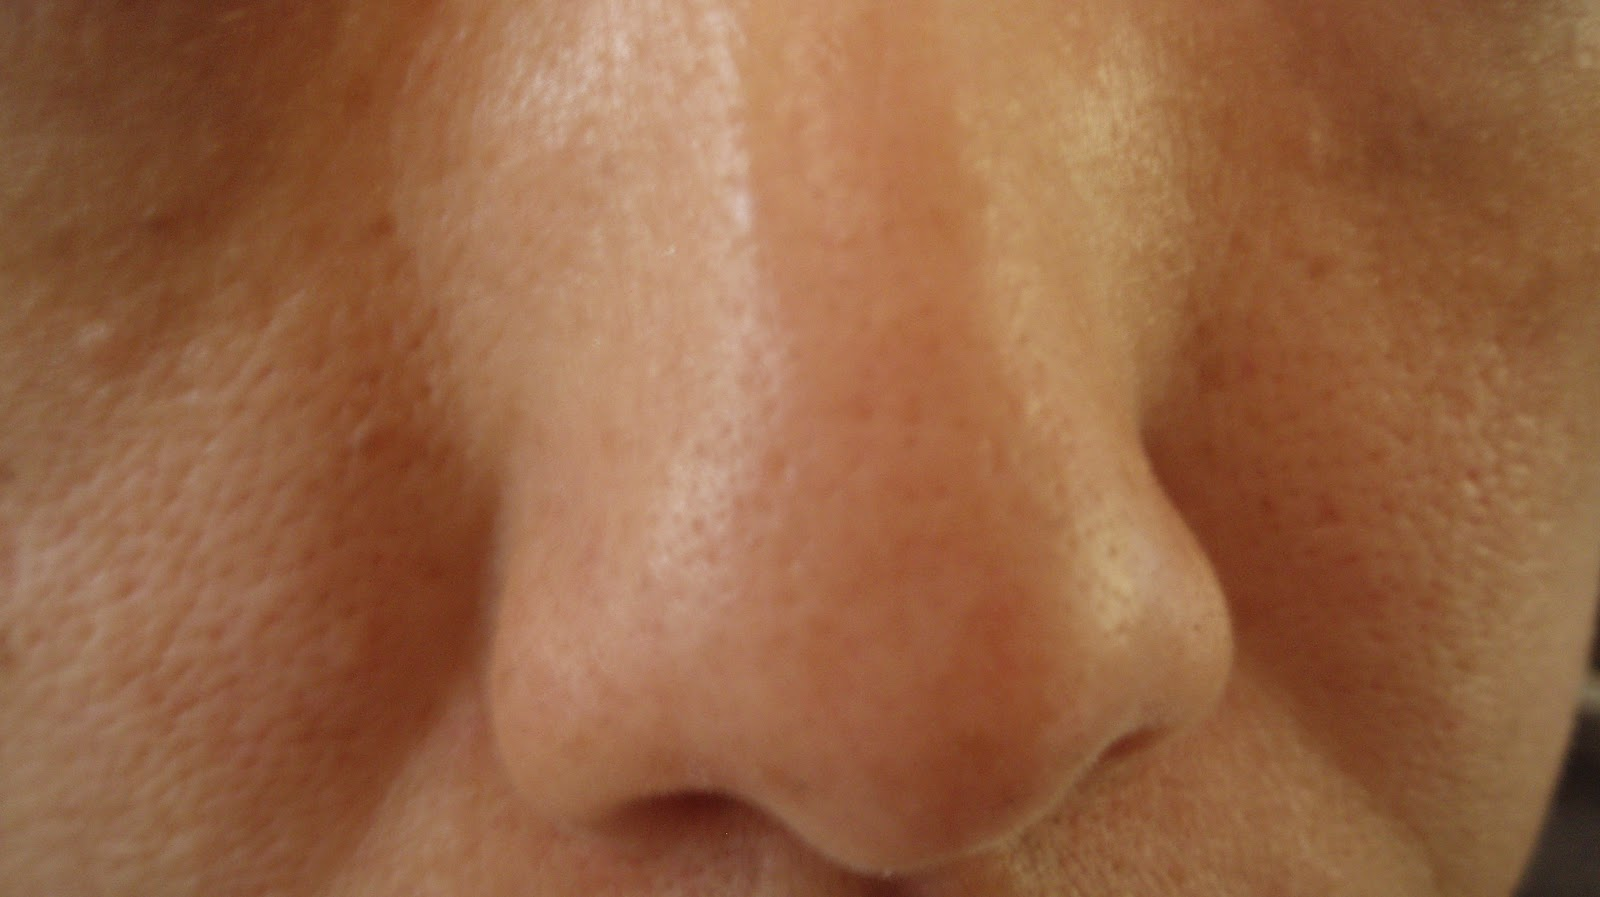 large pores on nose - photo #9